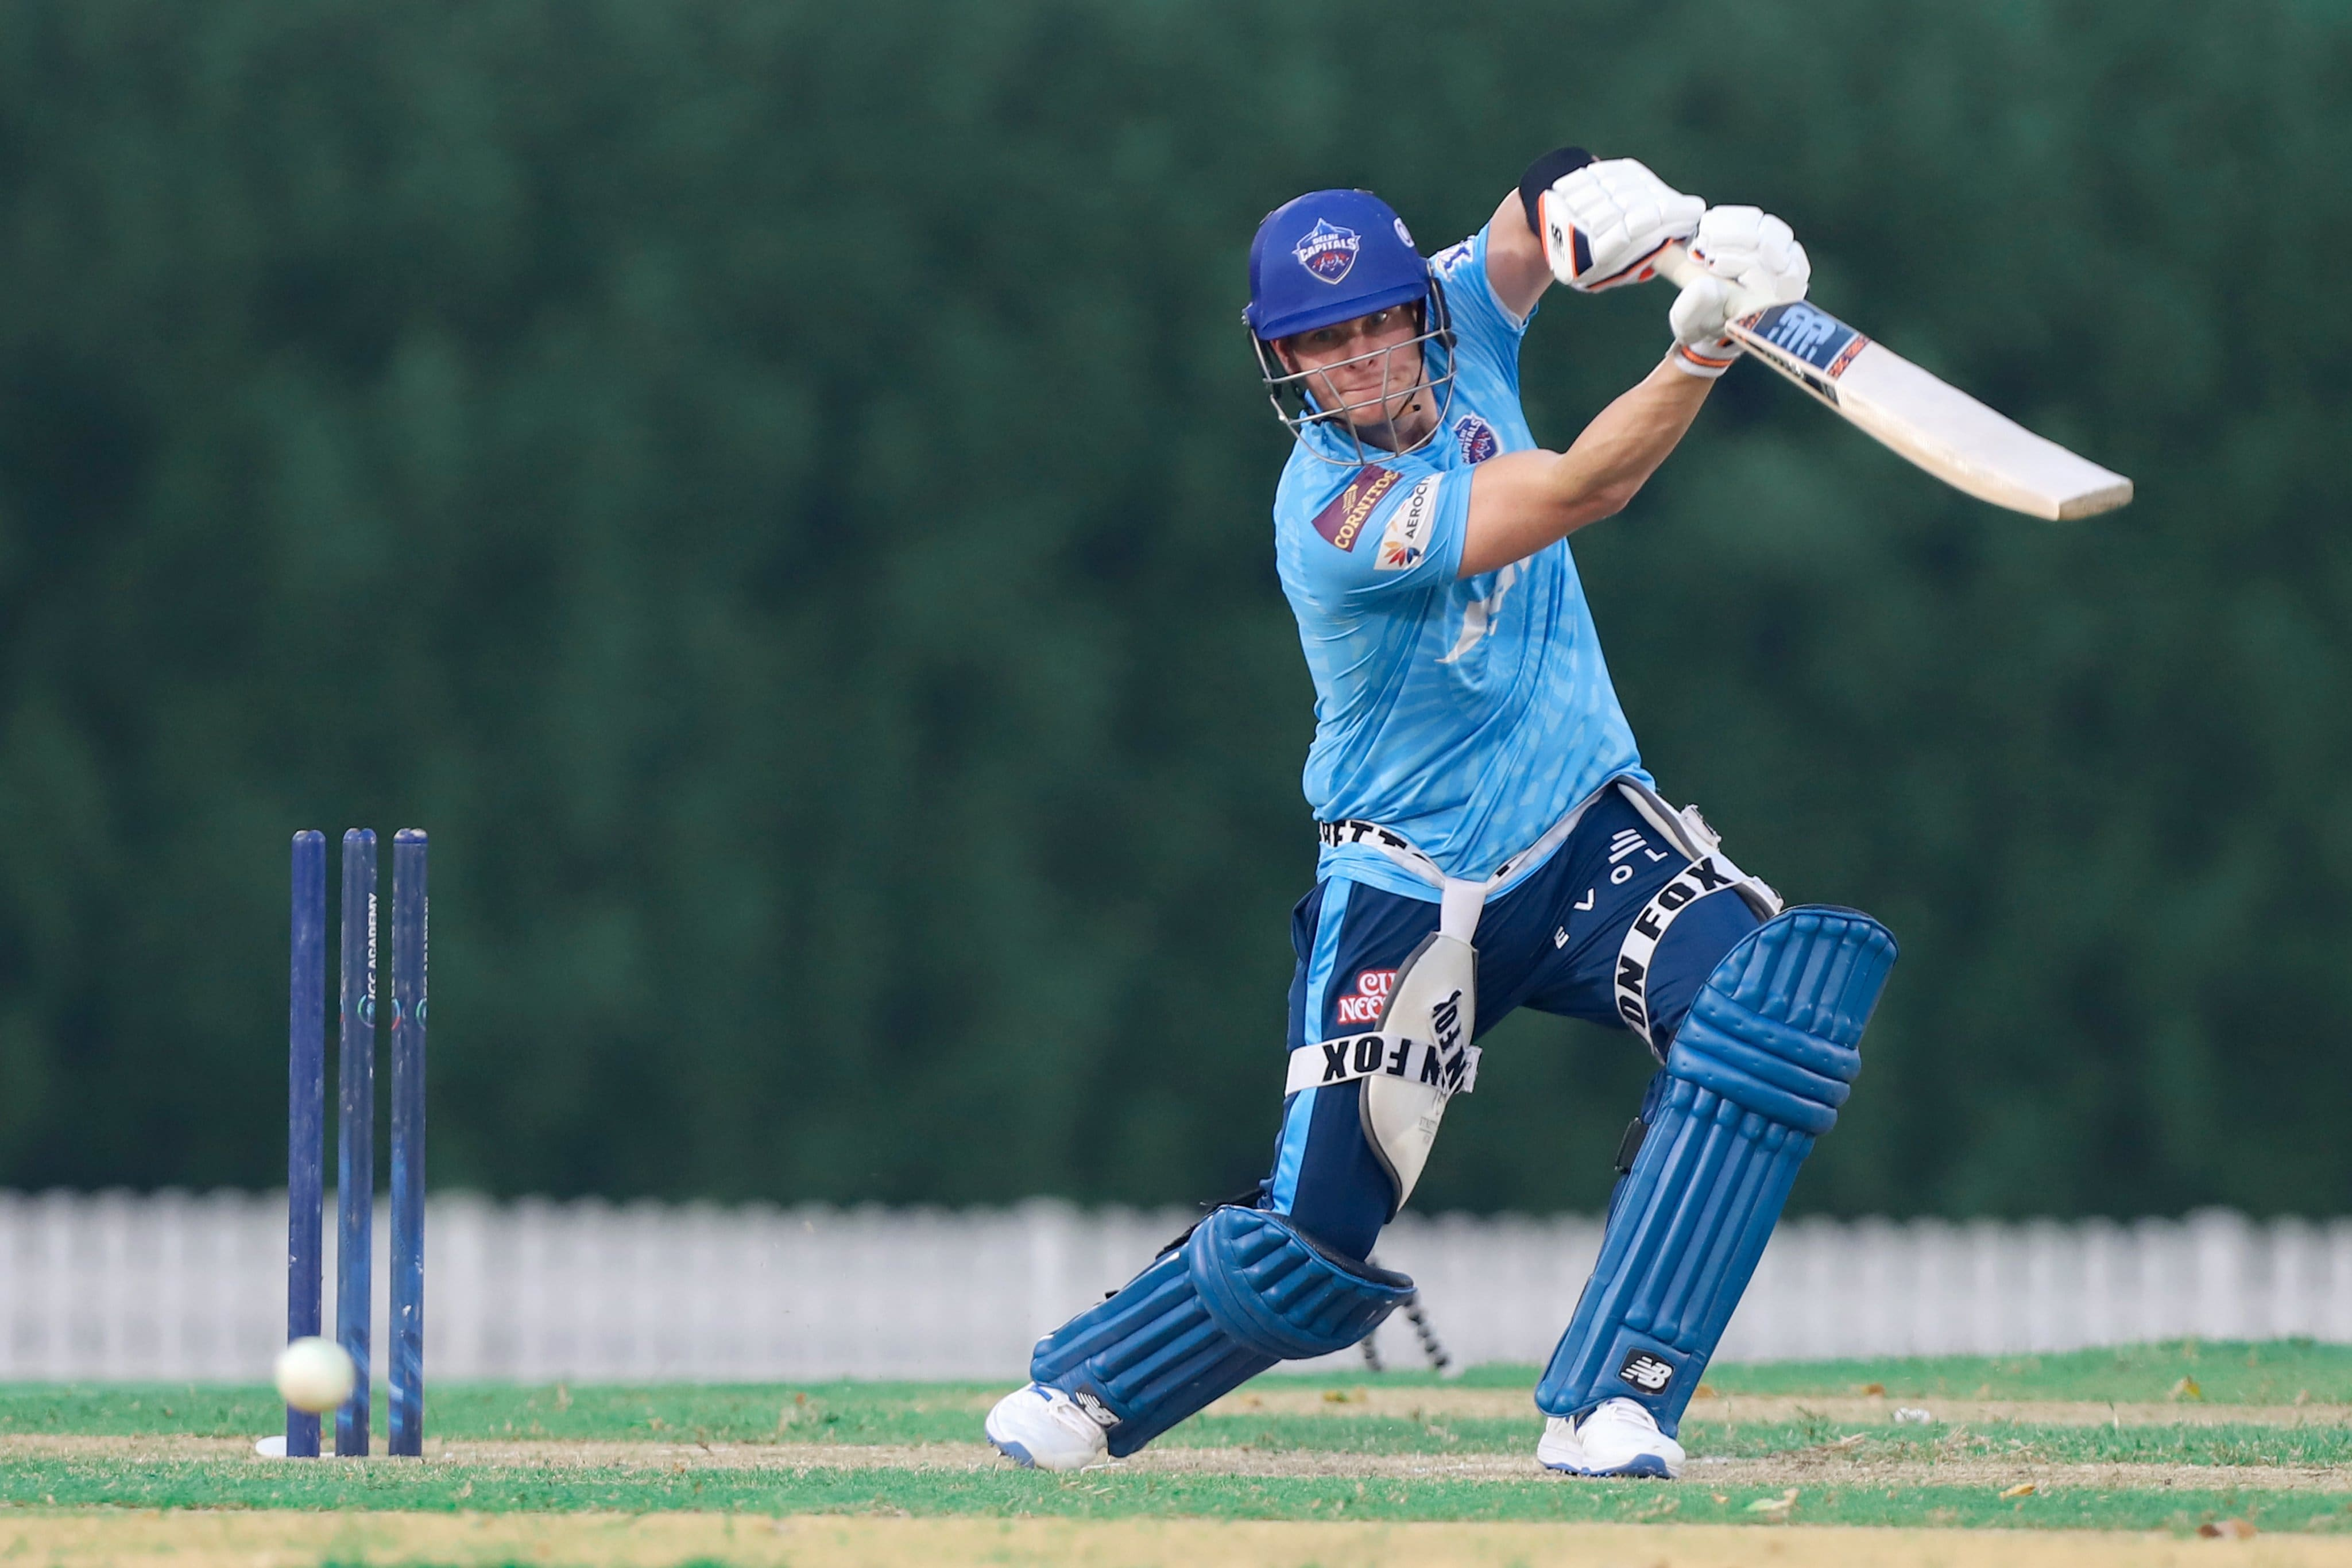 Former Australia and Rajasthan Royals captain Steve Smith will look to take strike it rich at Delhi Capitals. (Photo: Delhi Capitals)